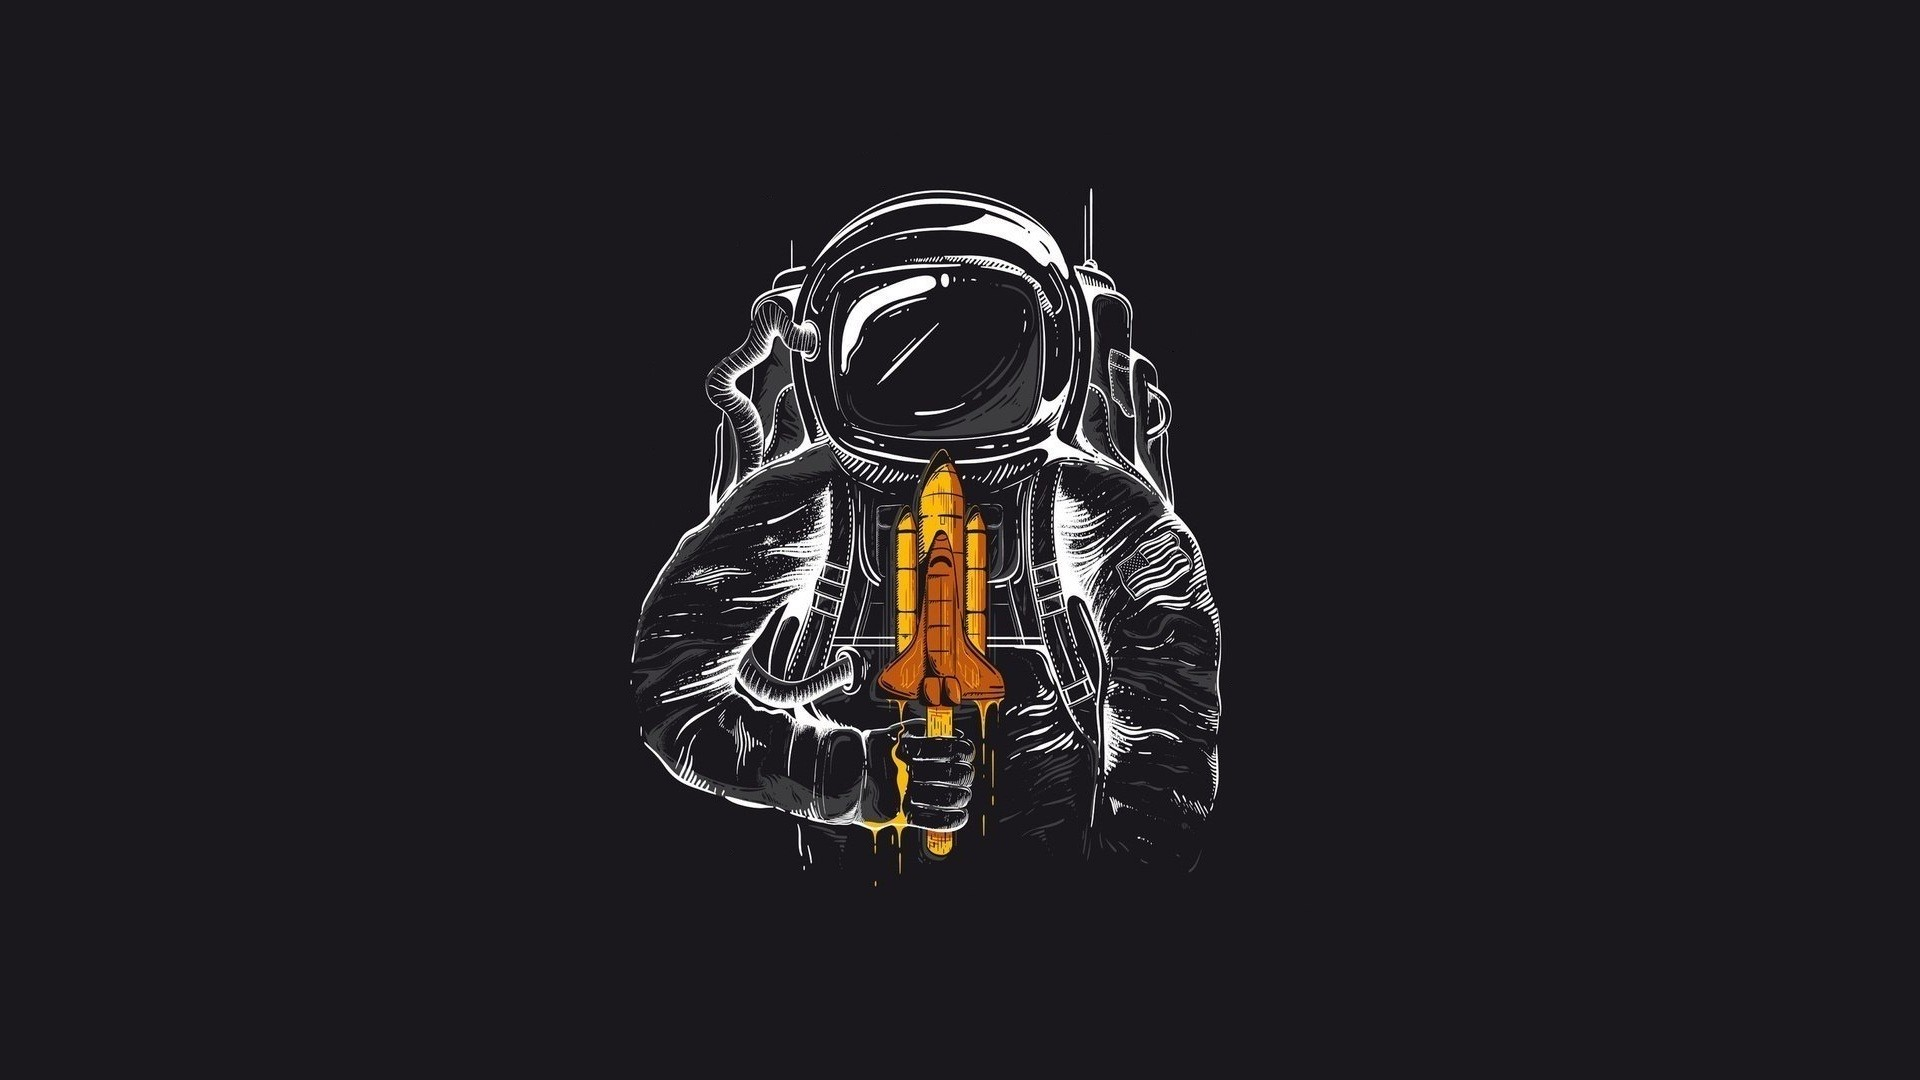 Drawn wallpaper astronaut HDWallpapers Astronaut On Collections Astronaut